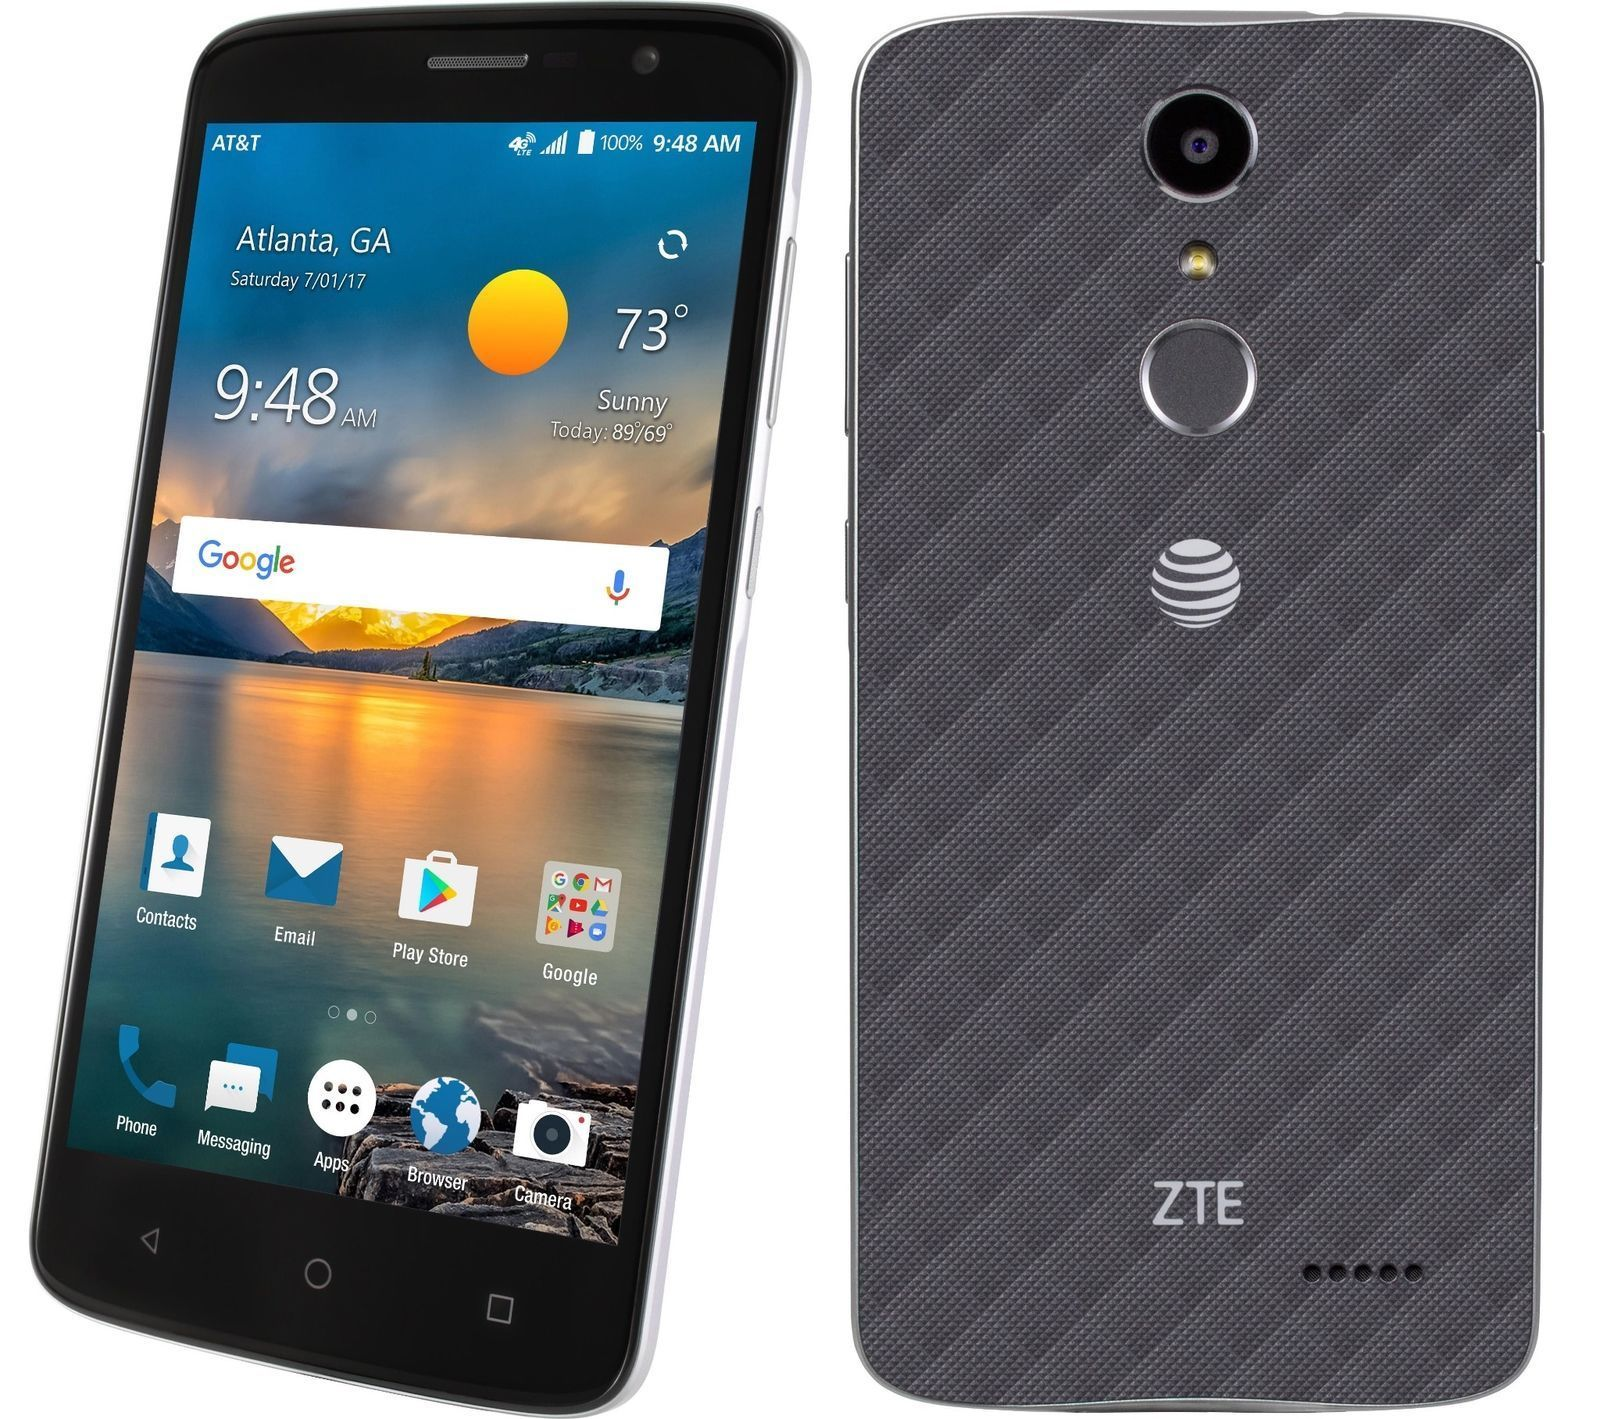 ProElectronics Distributing Inc : ZTE Blade Spark Unlocked 4G LTE